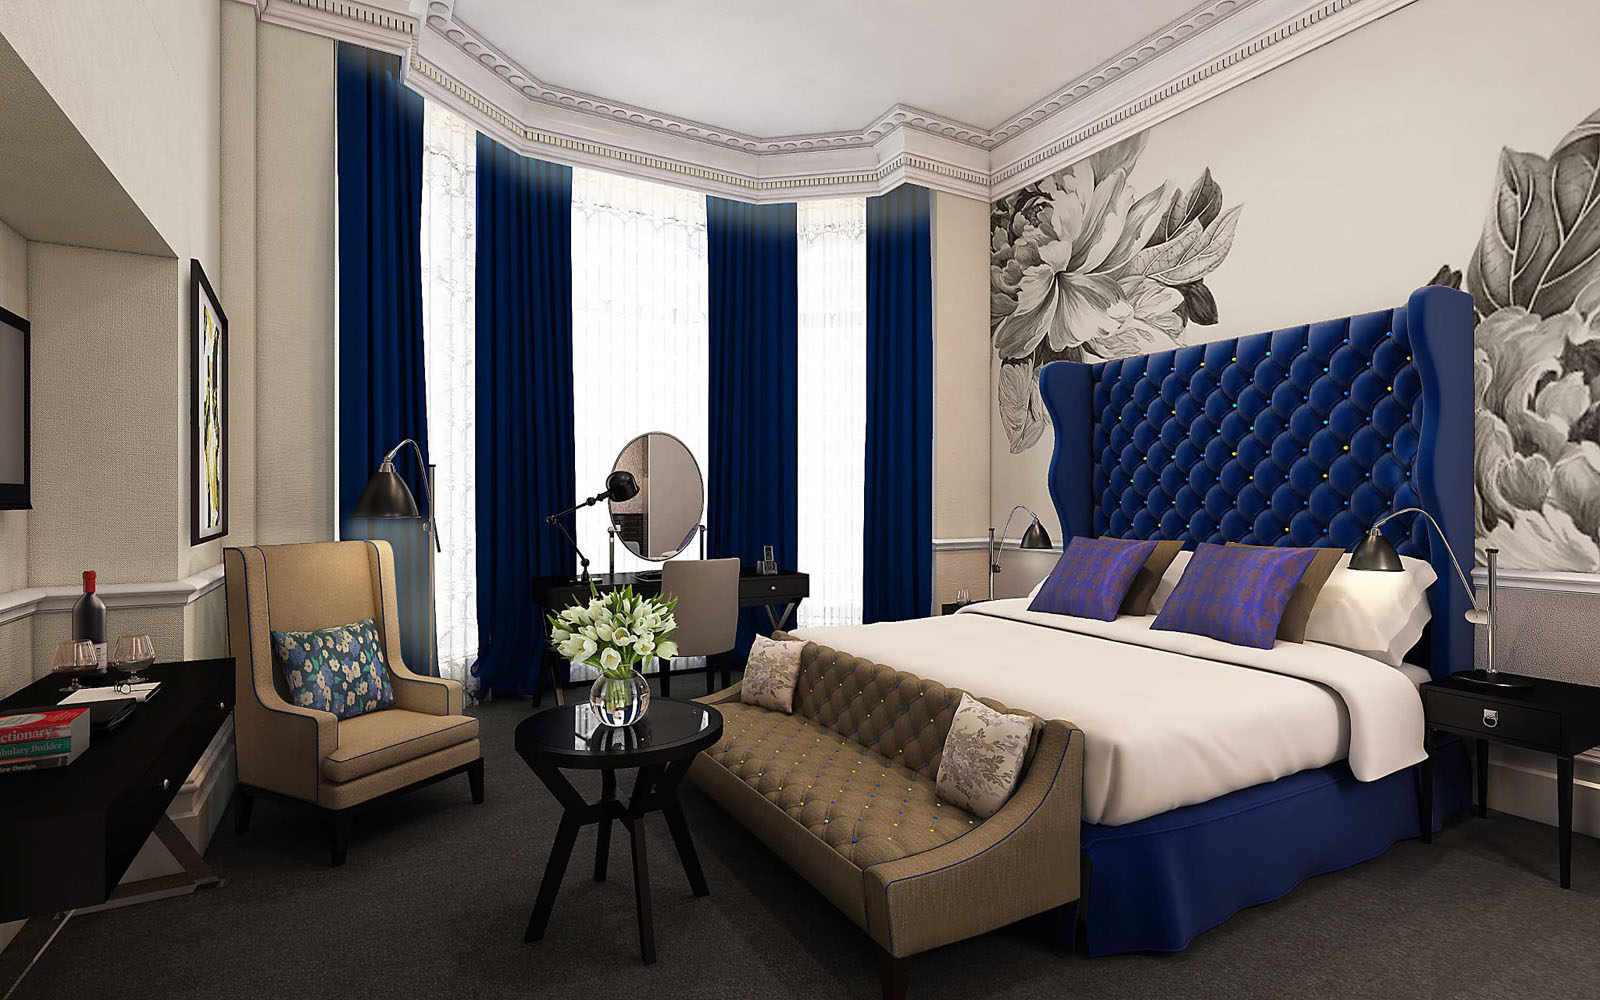 The ampersand hotel london victorian architecture with for Modern hotel decor